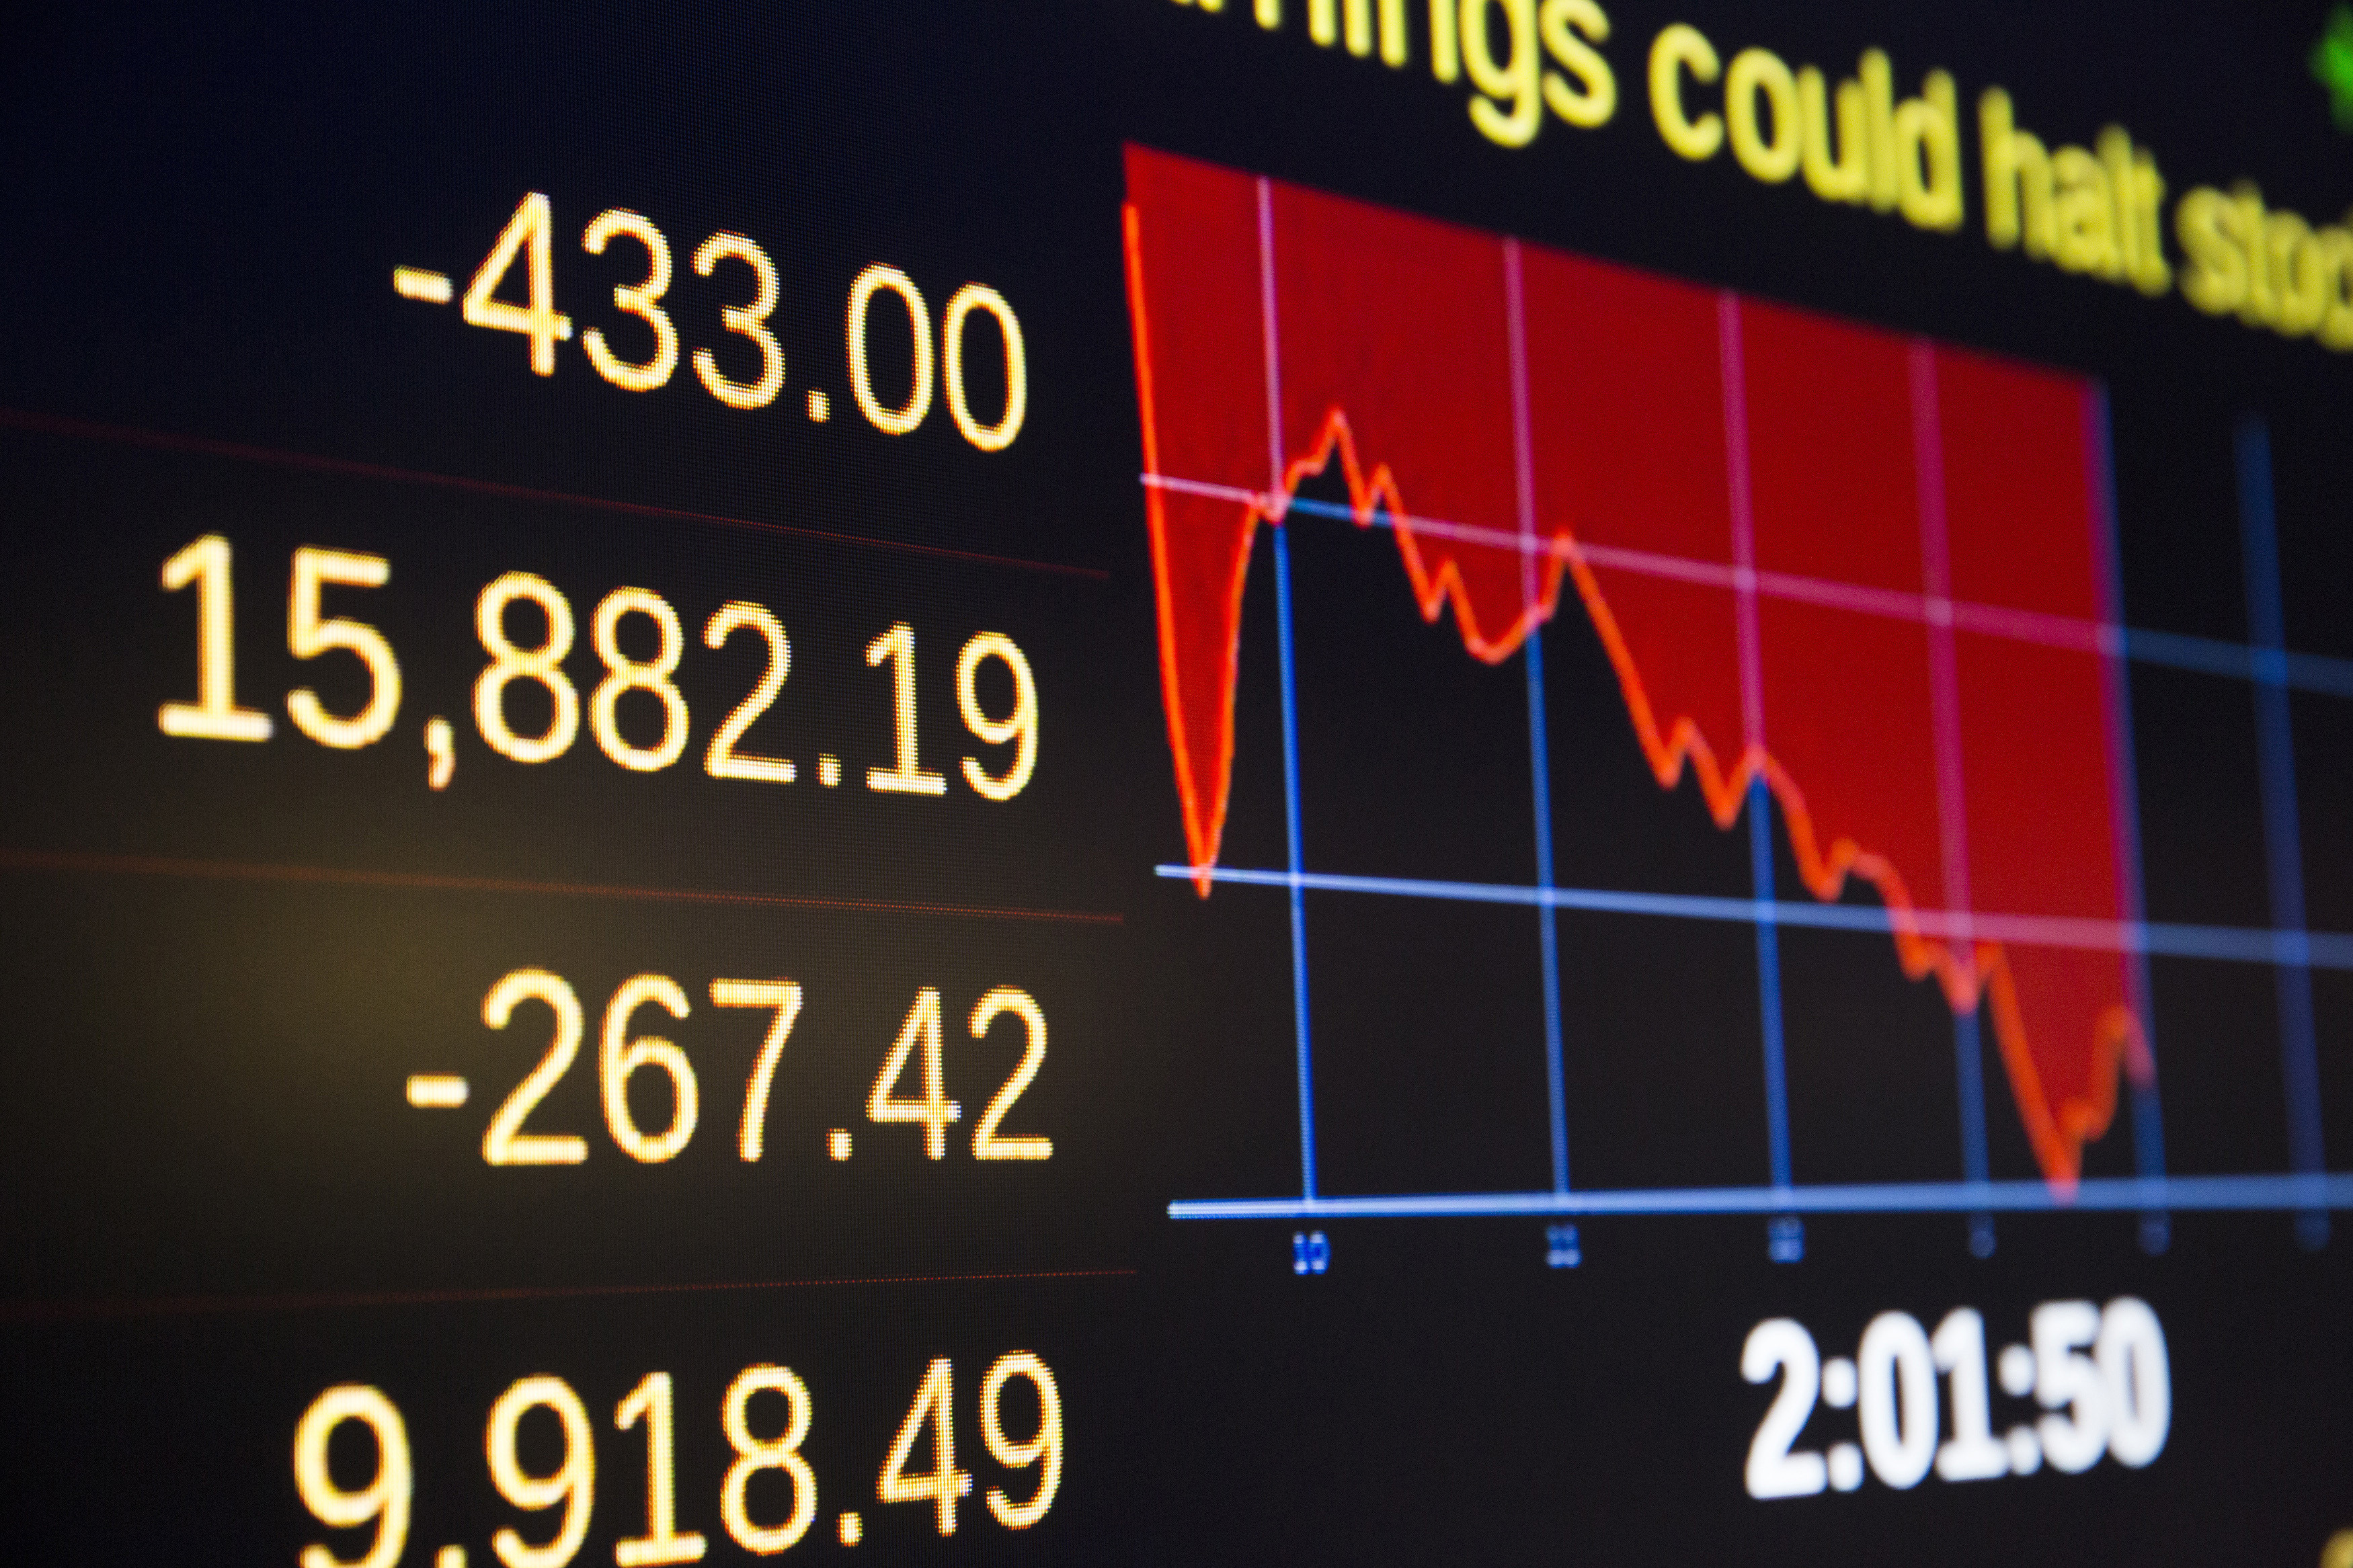 a board showing a generic economic trading price plummeting